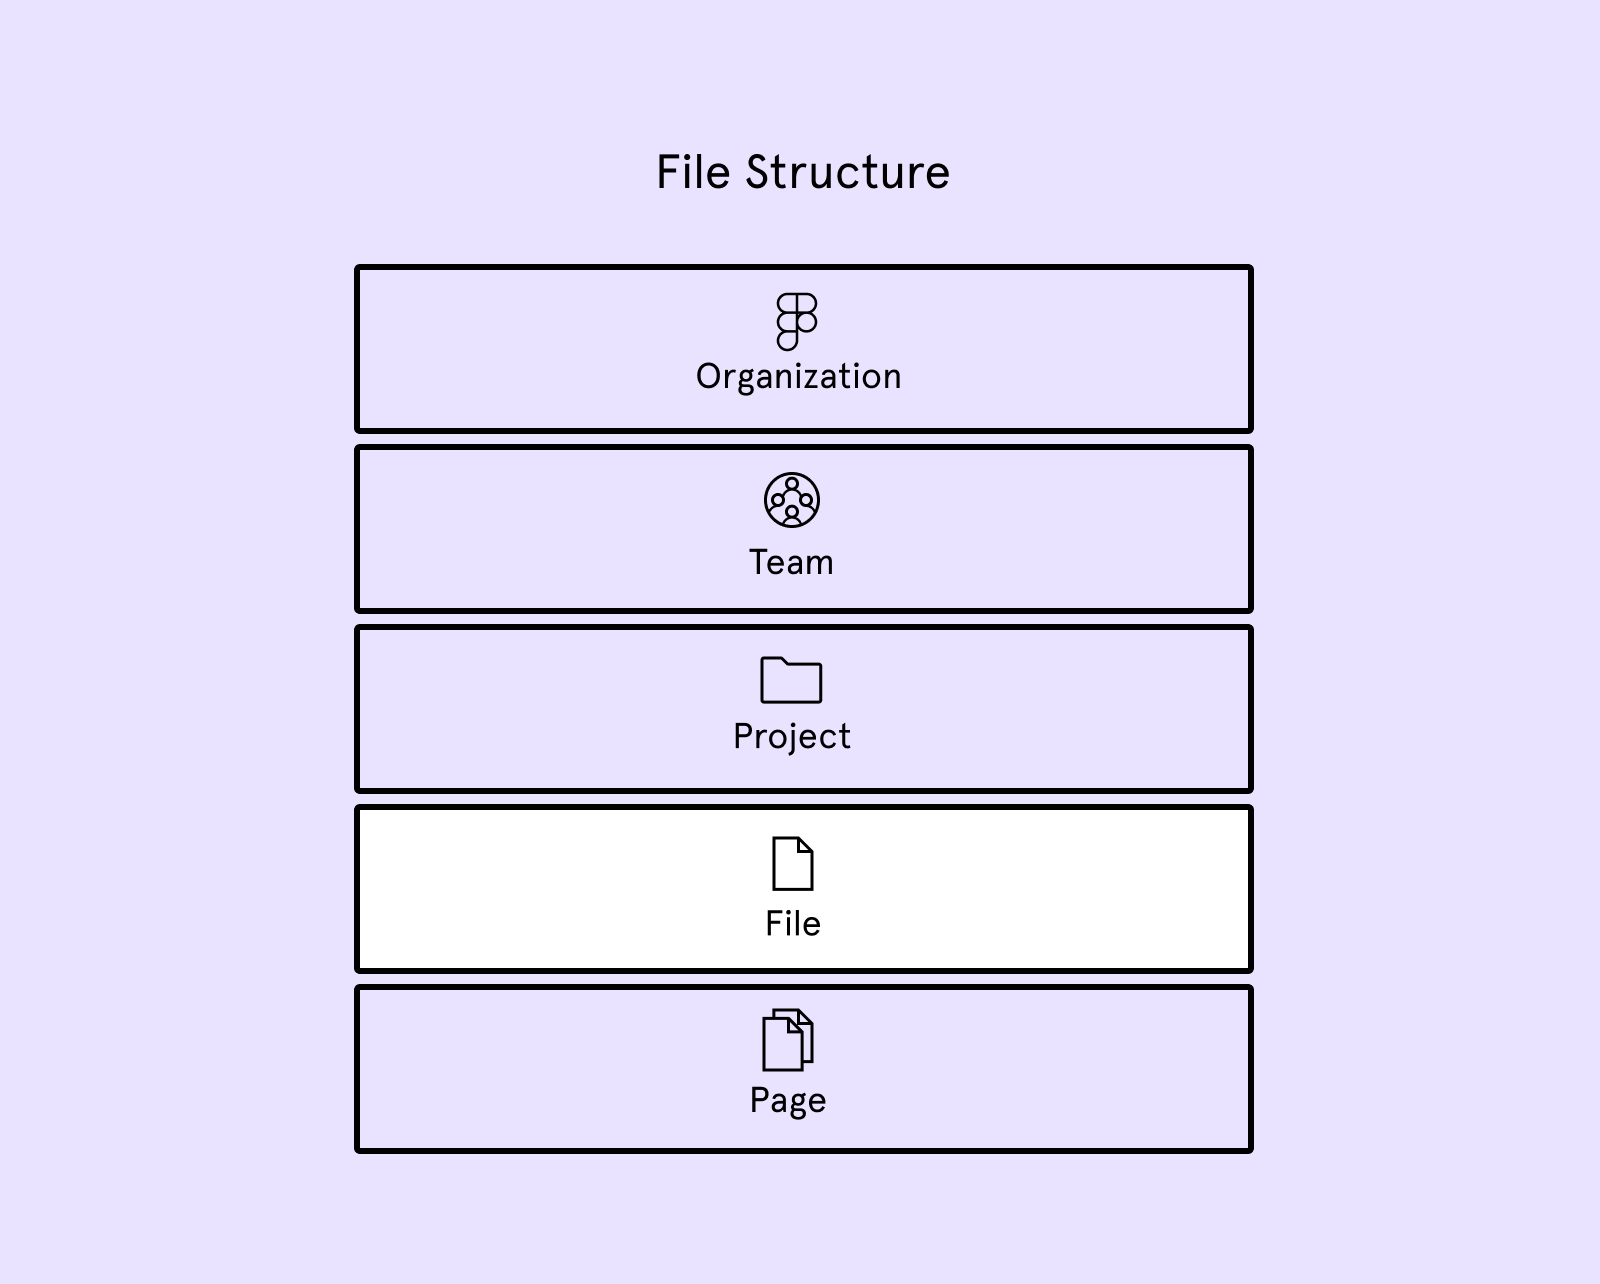 The hierarchy of organization levels in figma with Files being the fourth position out of five.